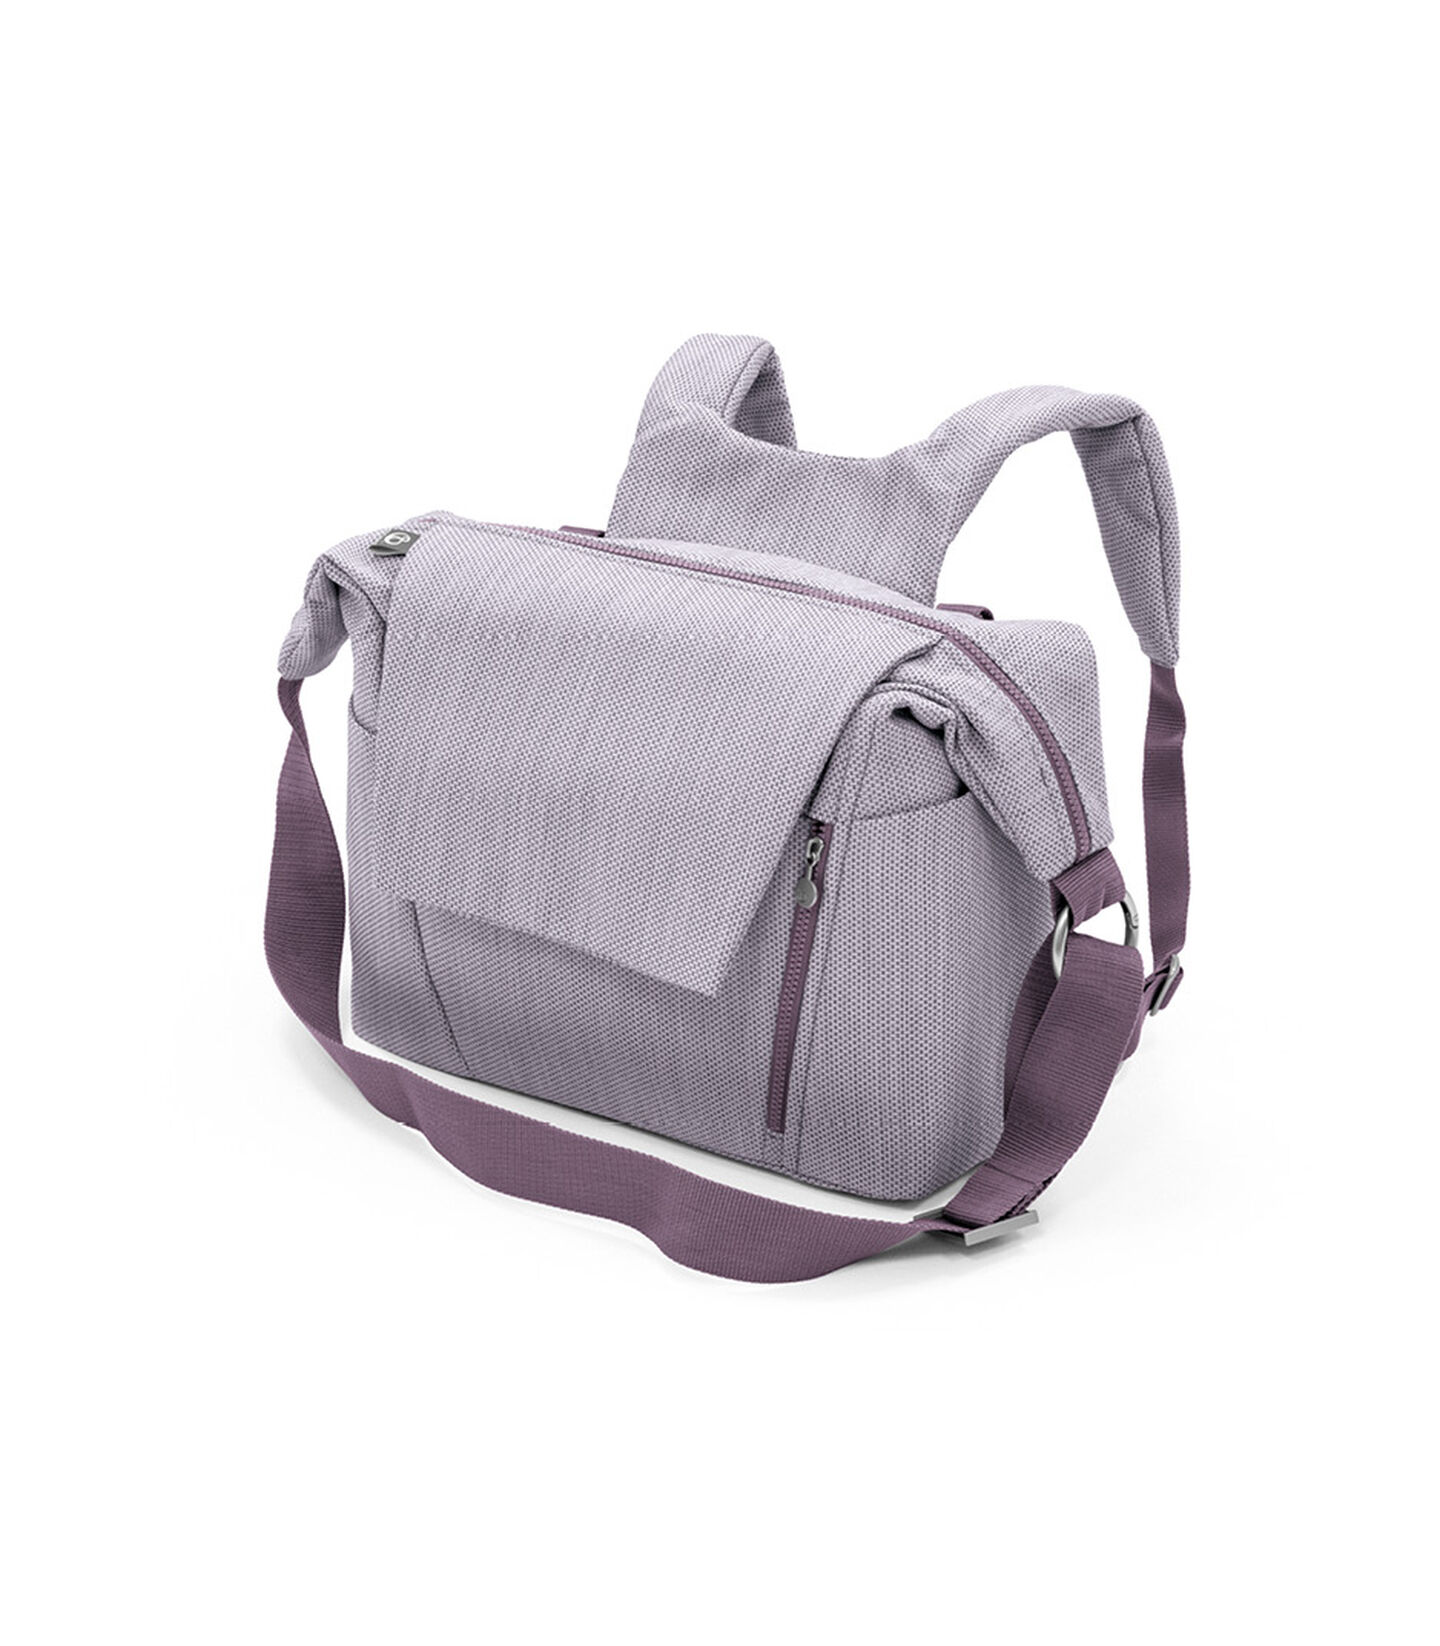 Stokke® Changing bag Brushed Lilac, Lila brossé, mainview view 2